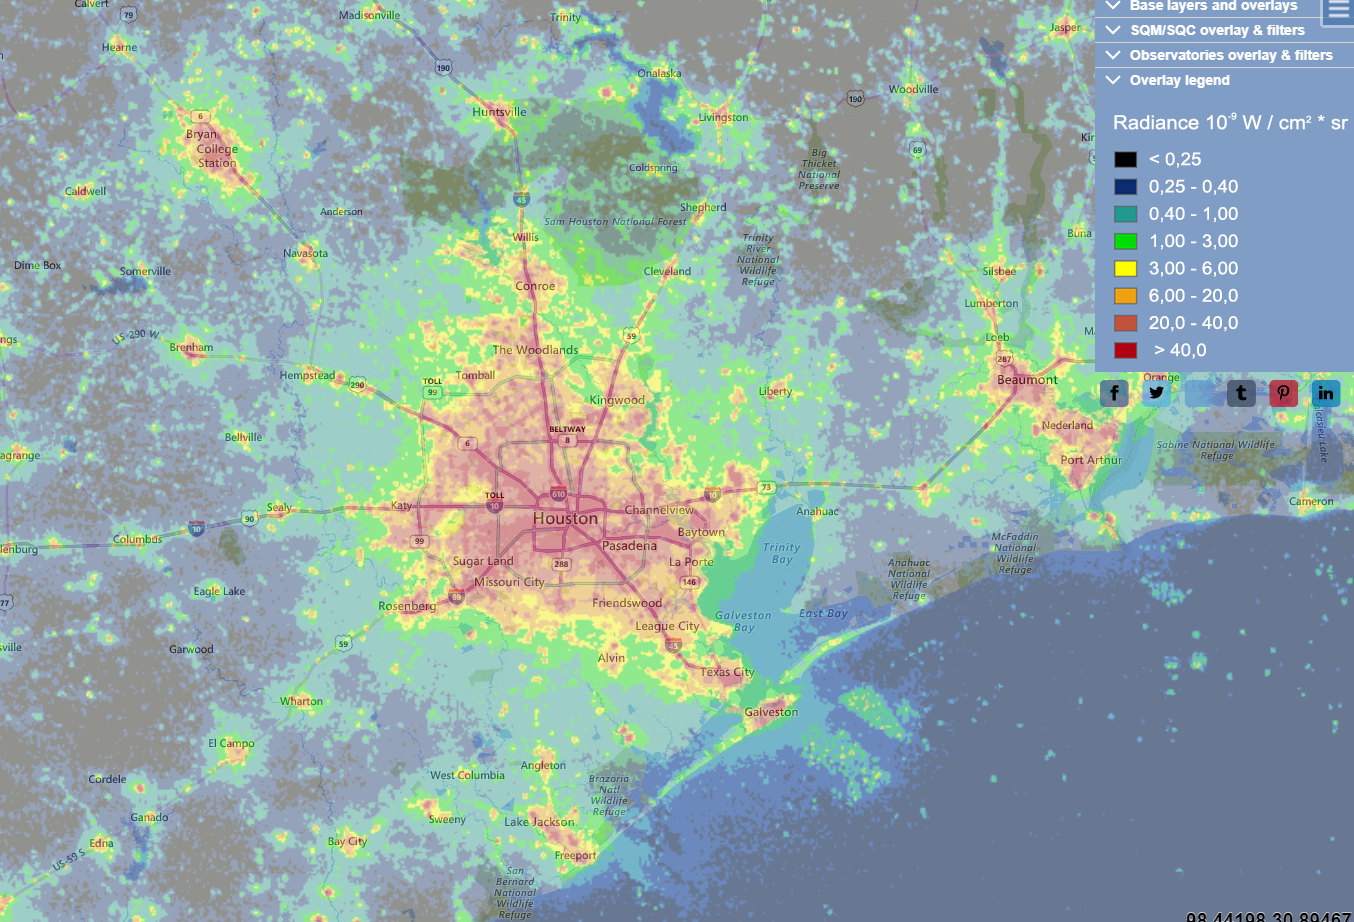 Light Pollution Map of Houston